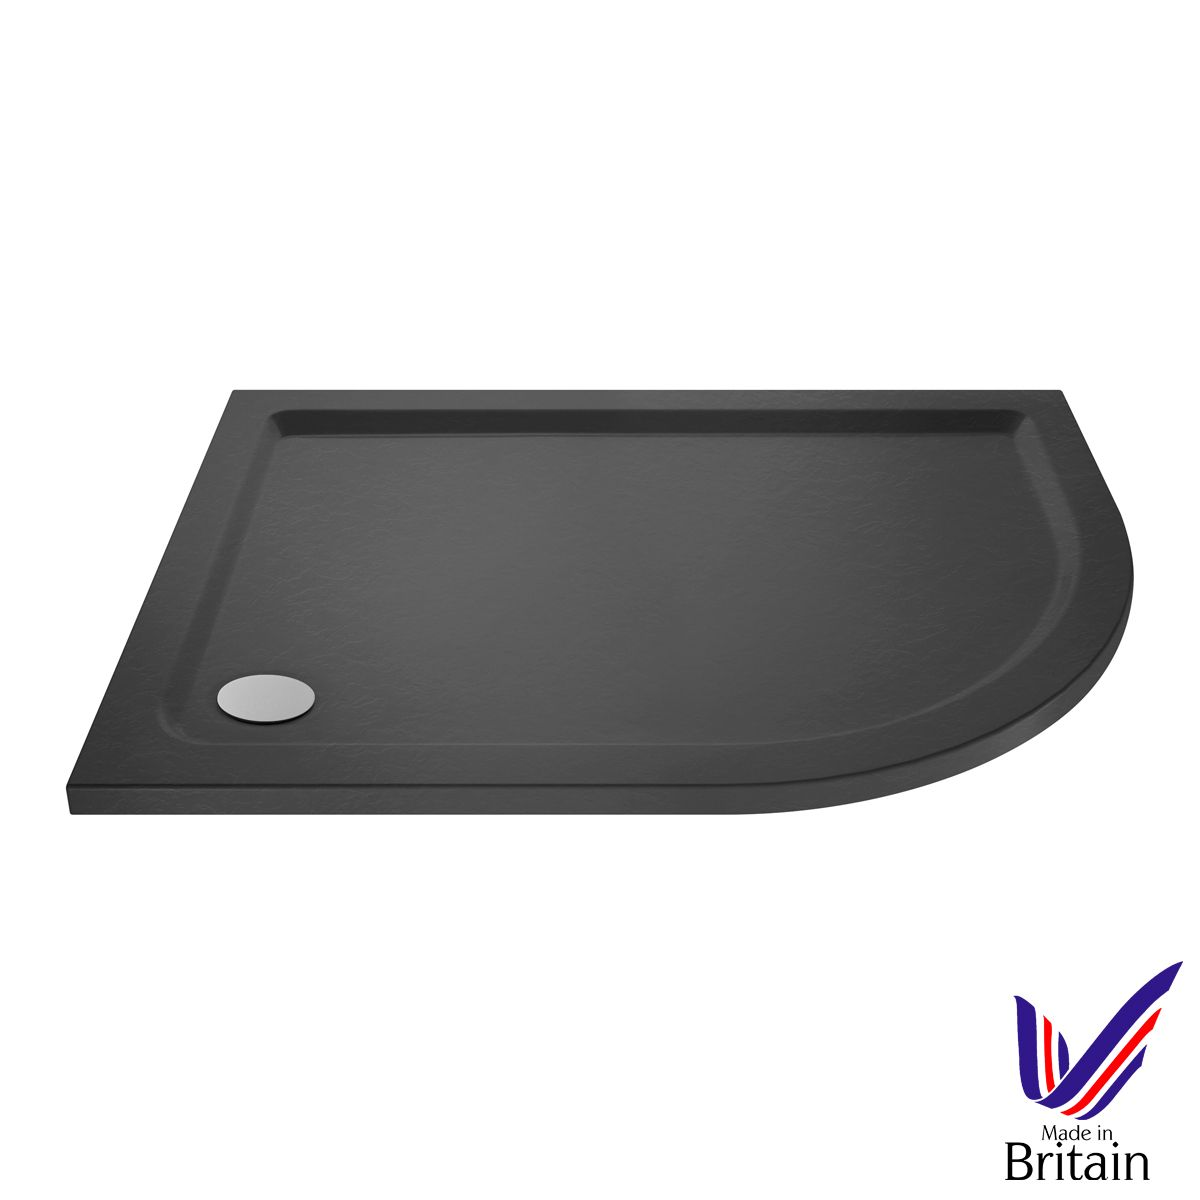 900 x 760 Shower Tray Slate Grey Offset Quadrant Low Profile Right Hand by Pearlstone